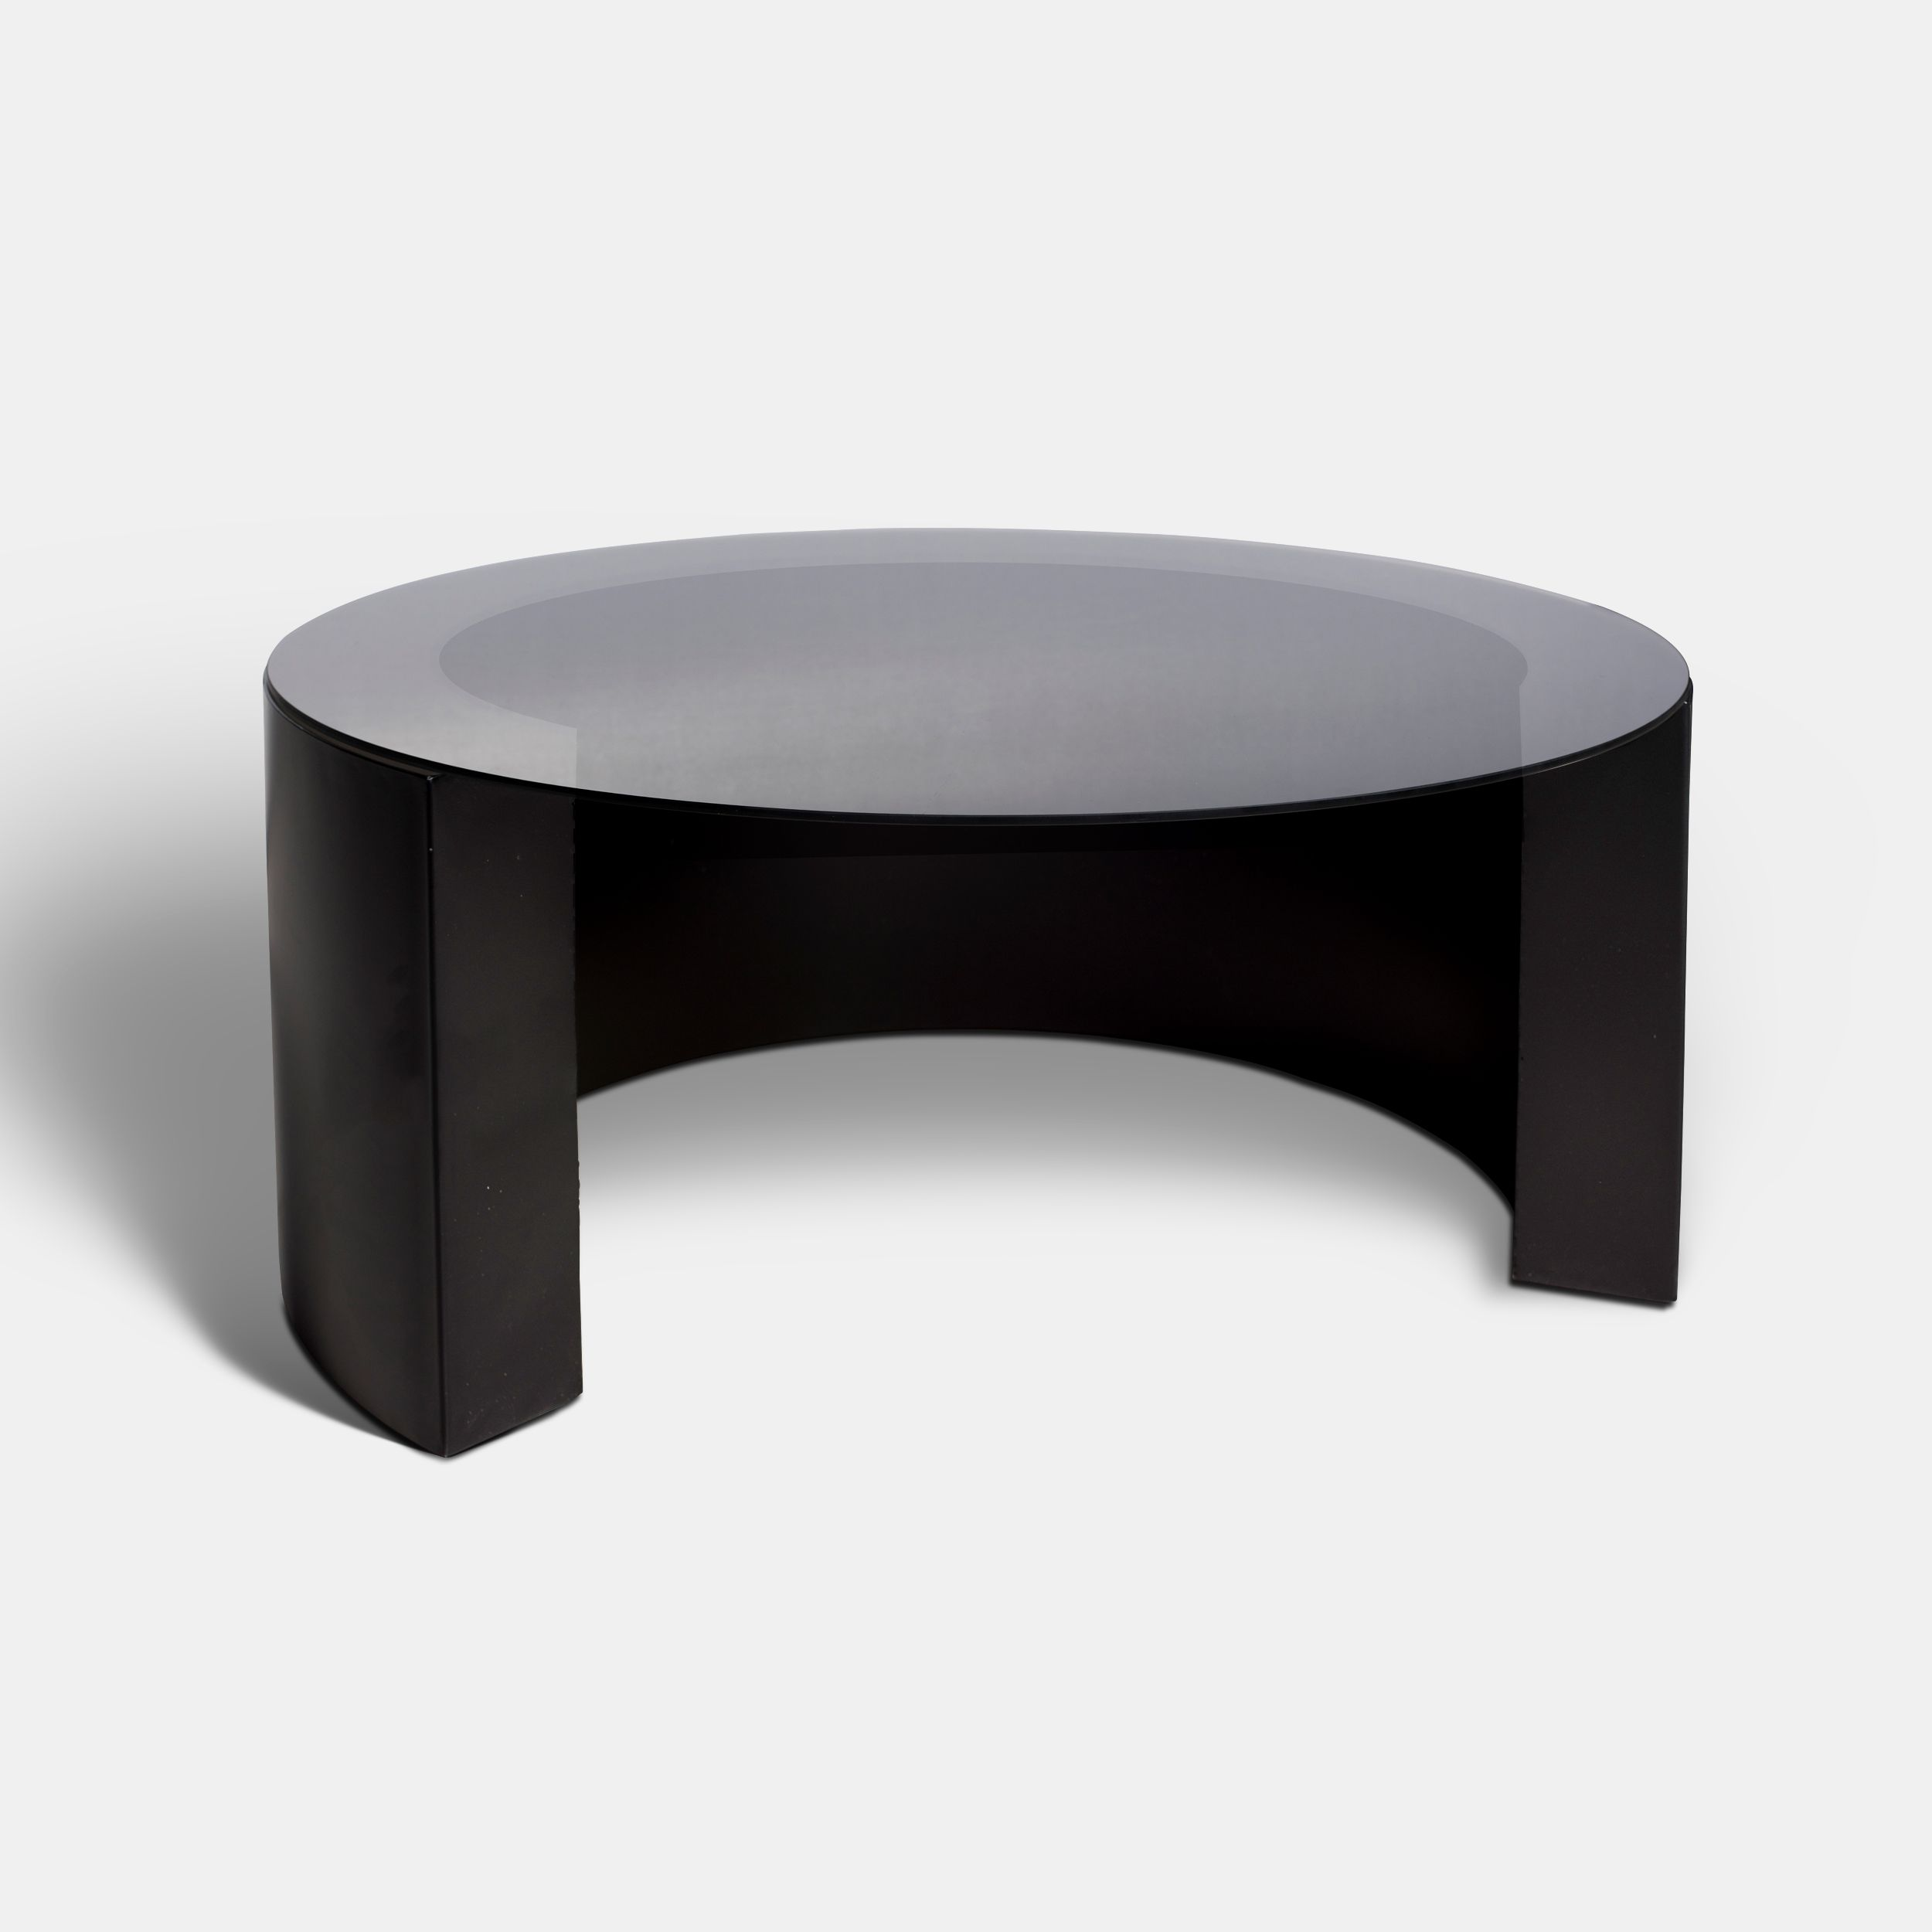 Hudson coffee table 41 rapture interior luxury collection fall hudson coffee table 41 geotapseo Images